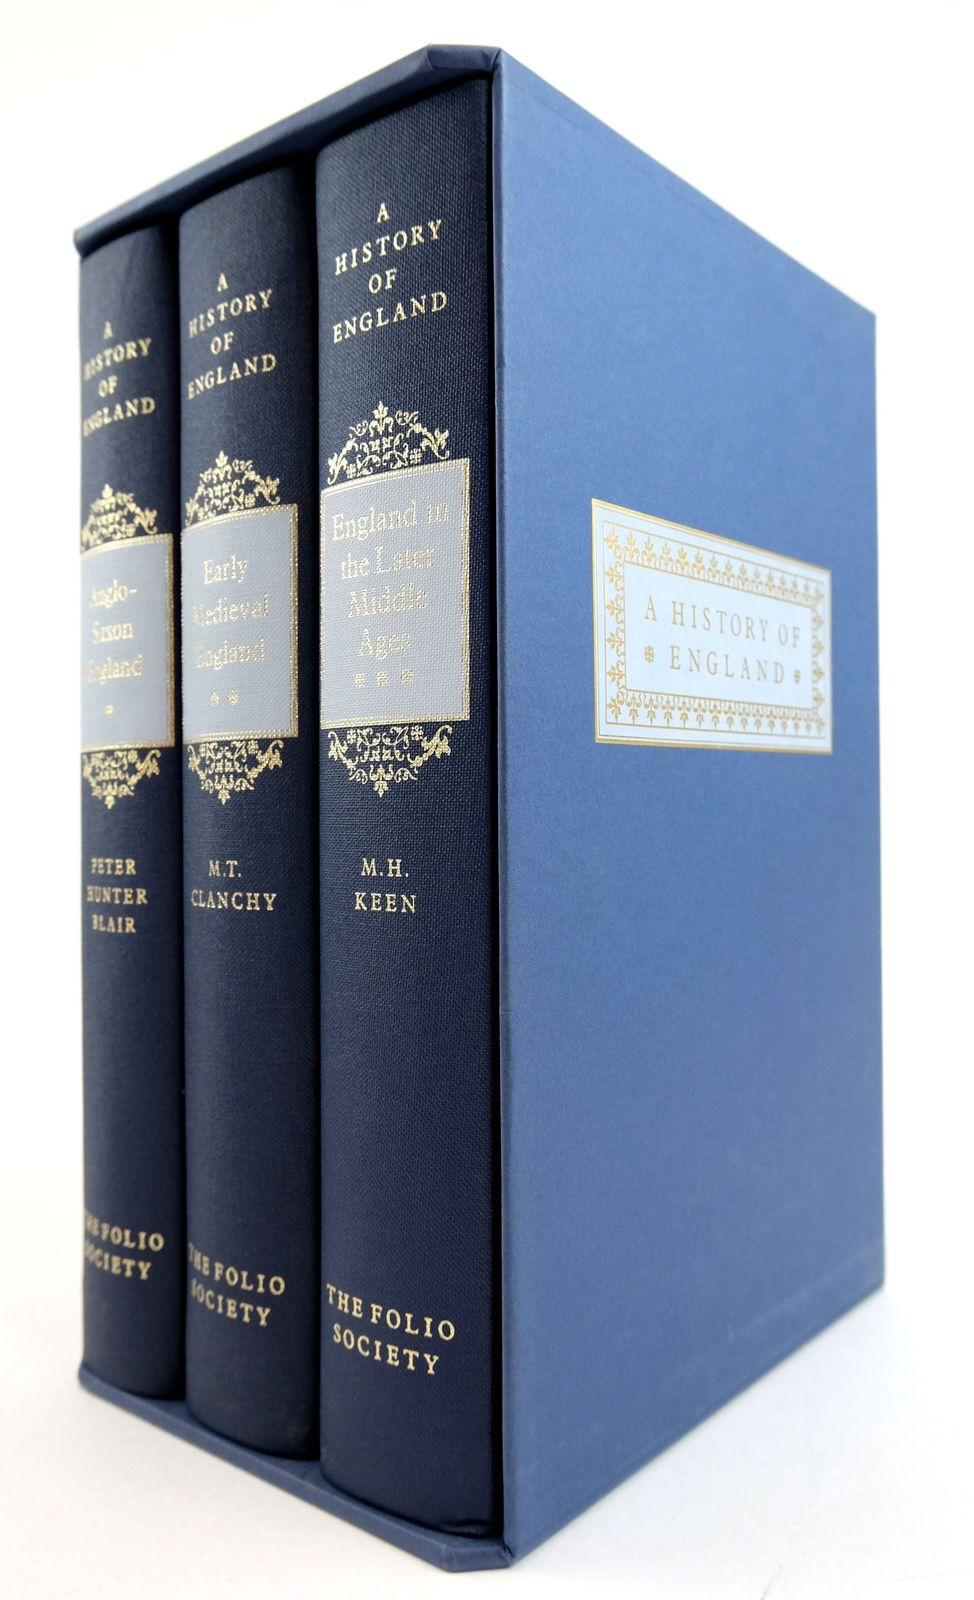 Photo of A HISTORY OF ENGLAND (3 VOLUMES) written by Keen, M.H. Blair, Peter Hunter Clanchy, M.T. published by Folio Society (STOCK CODE: 1819101)  for sale by Stella & Rose's Books